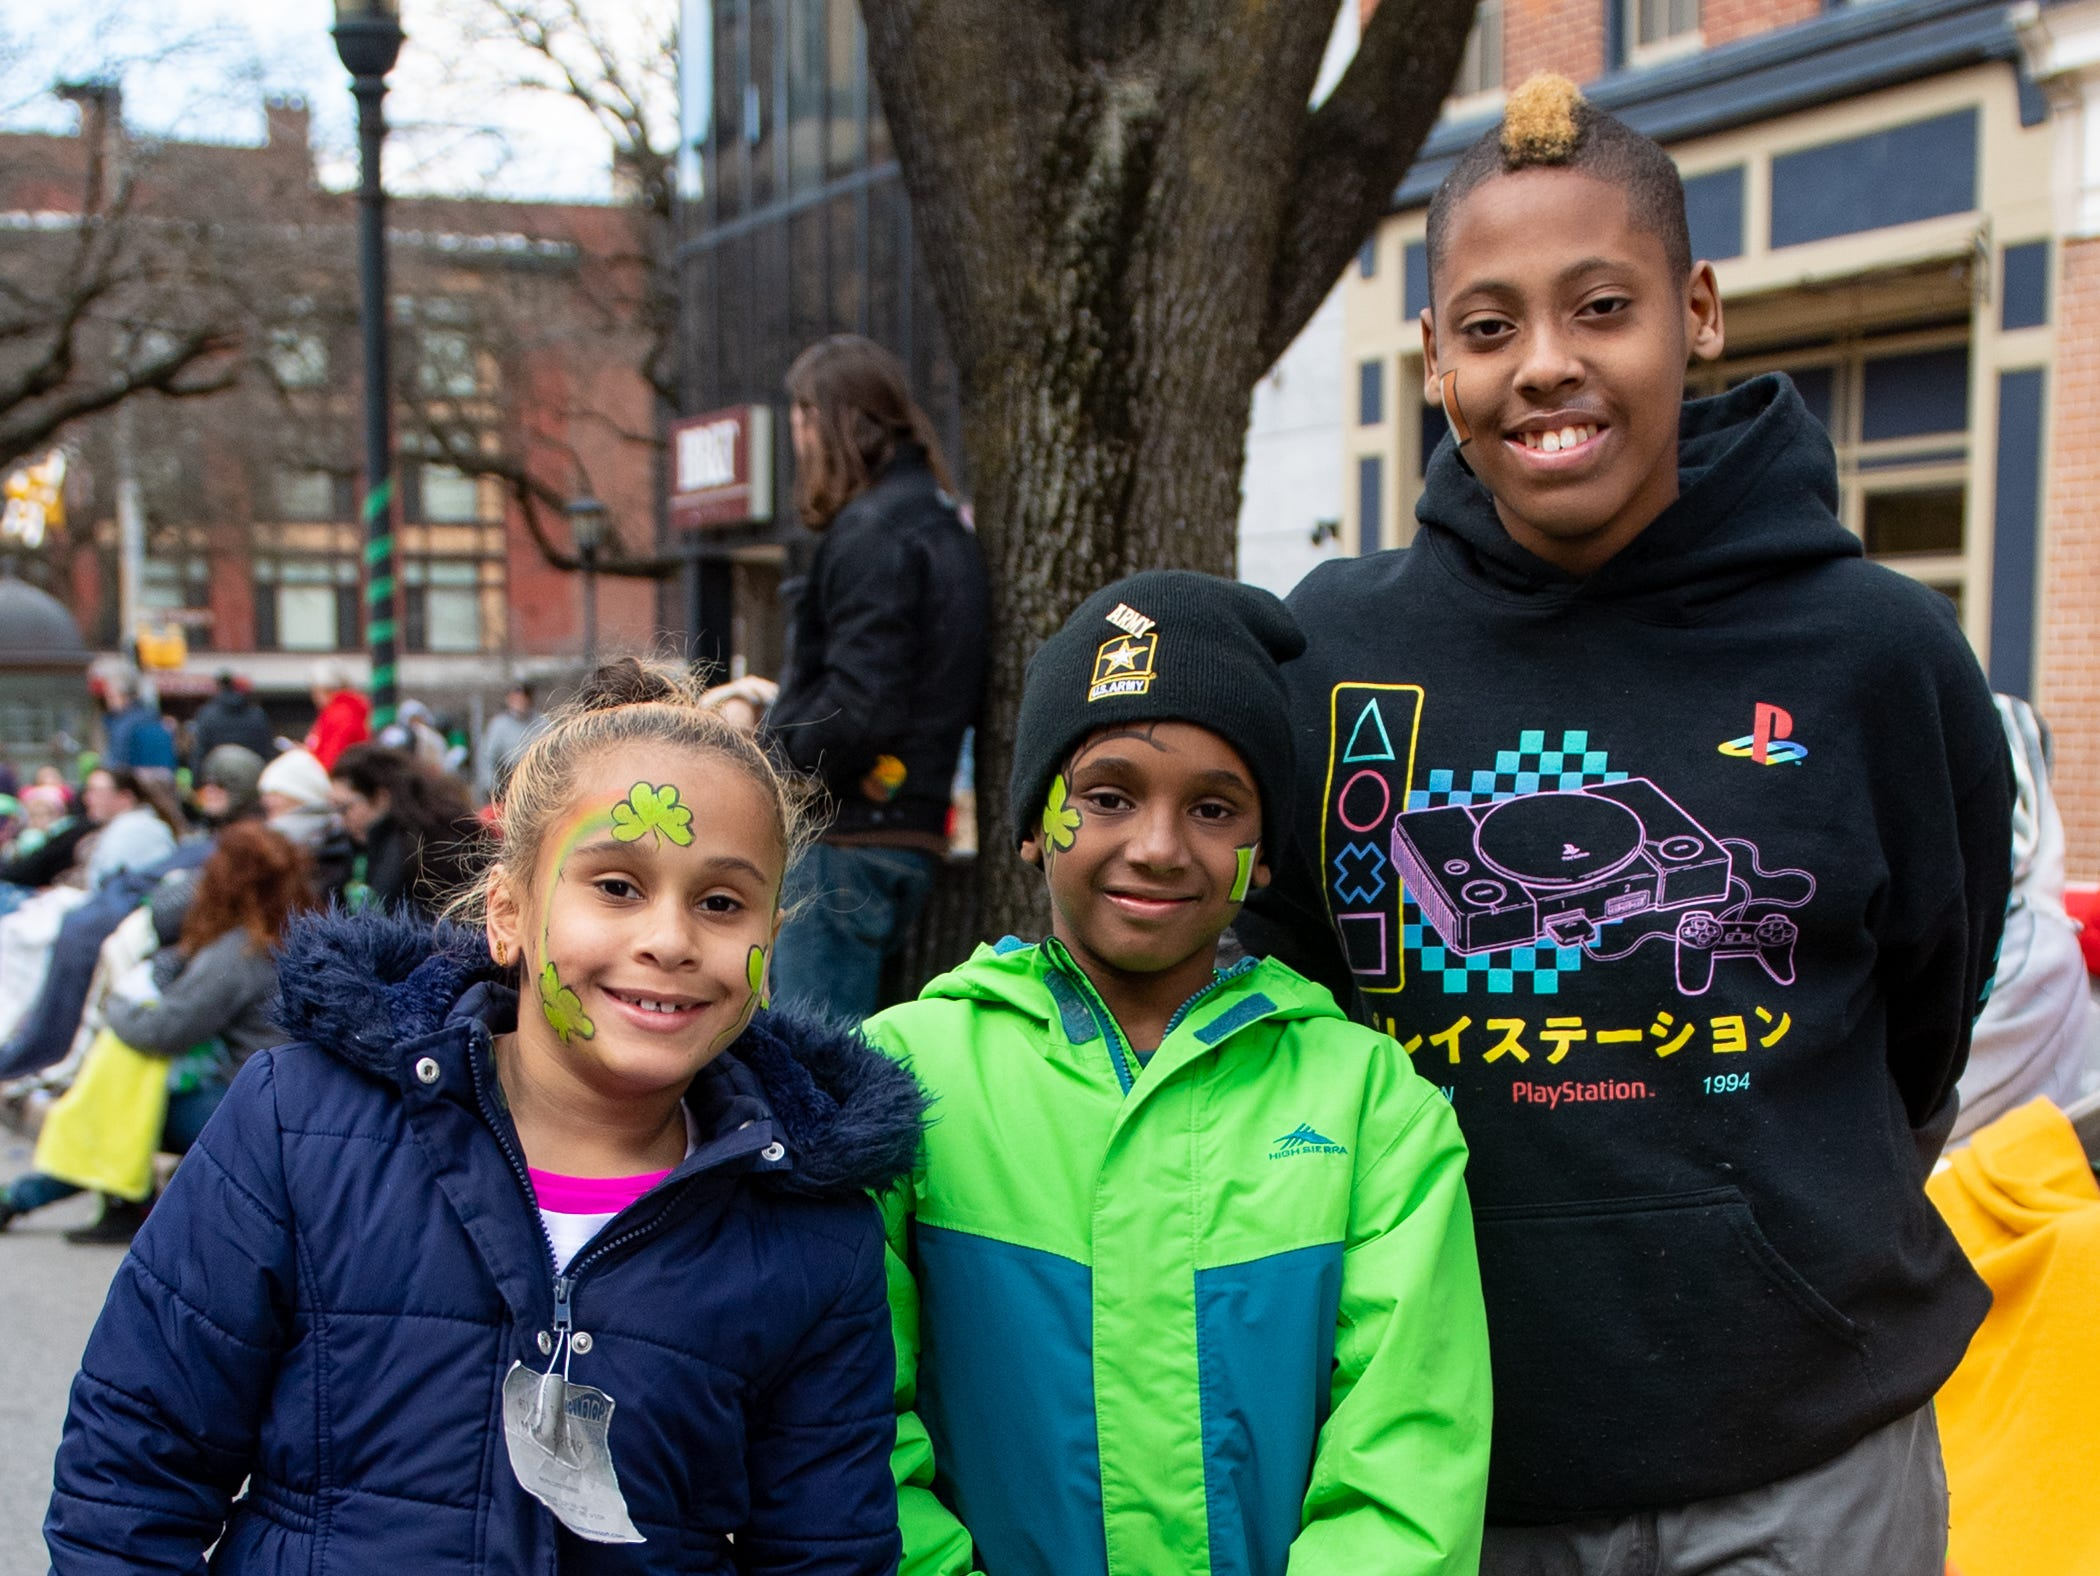 (Left to right) Apple, Dominick and Cain Dowell have paintings of shamrocks on their faces for the parade, March 16, 2019.